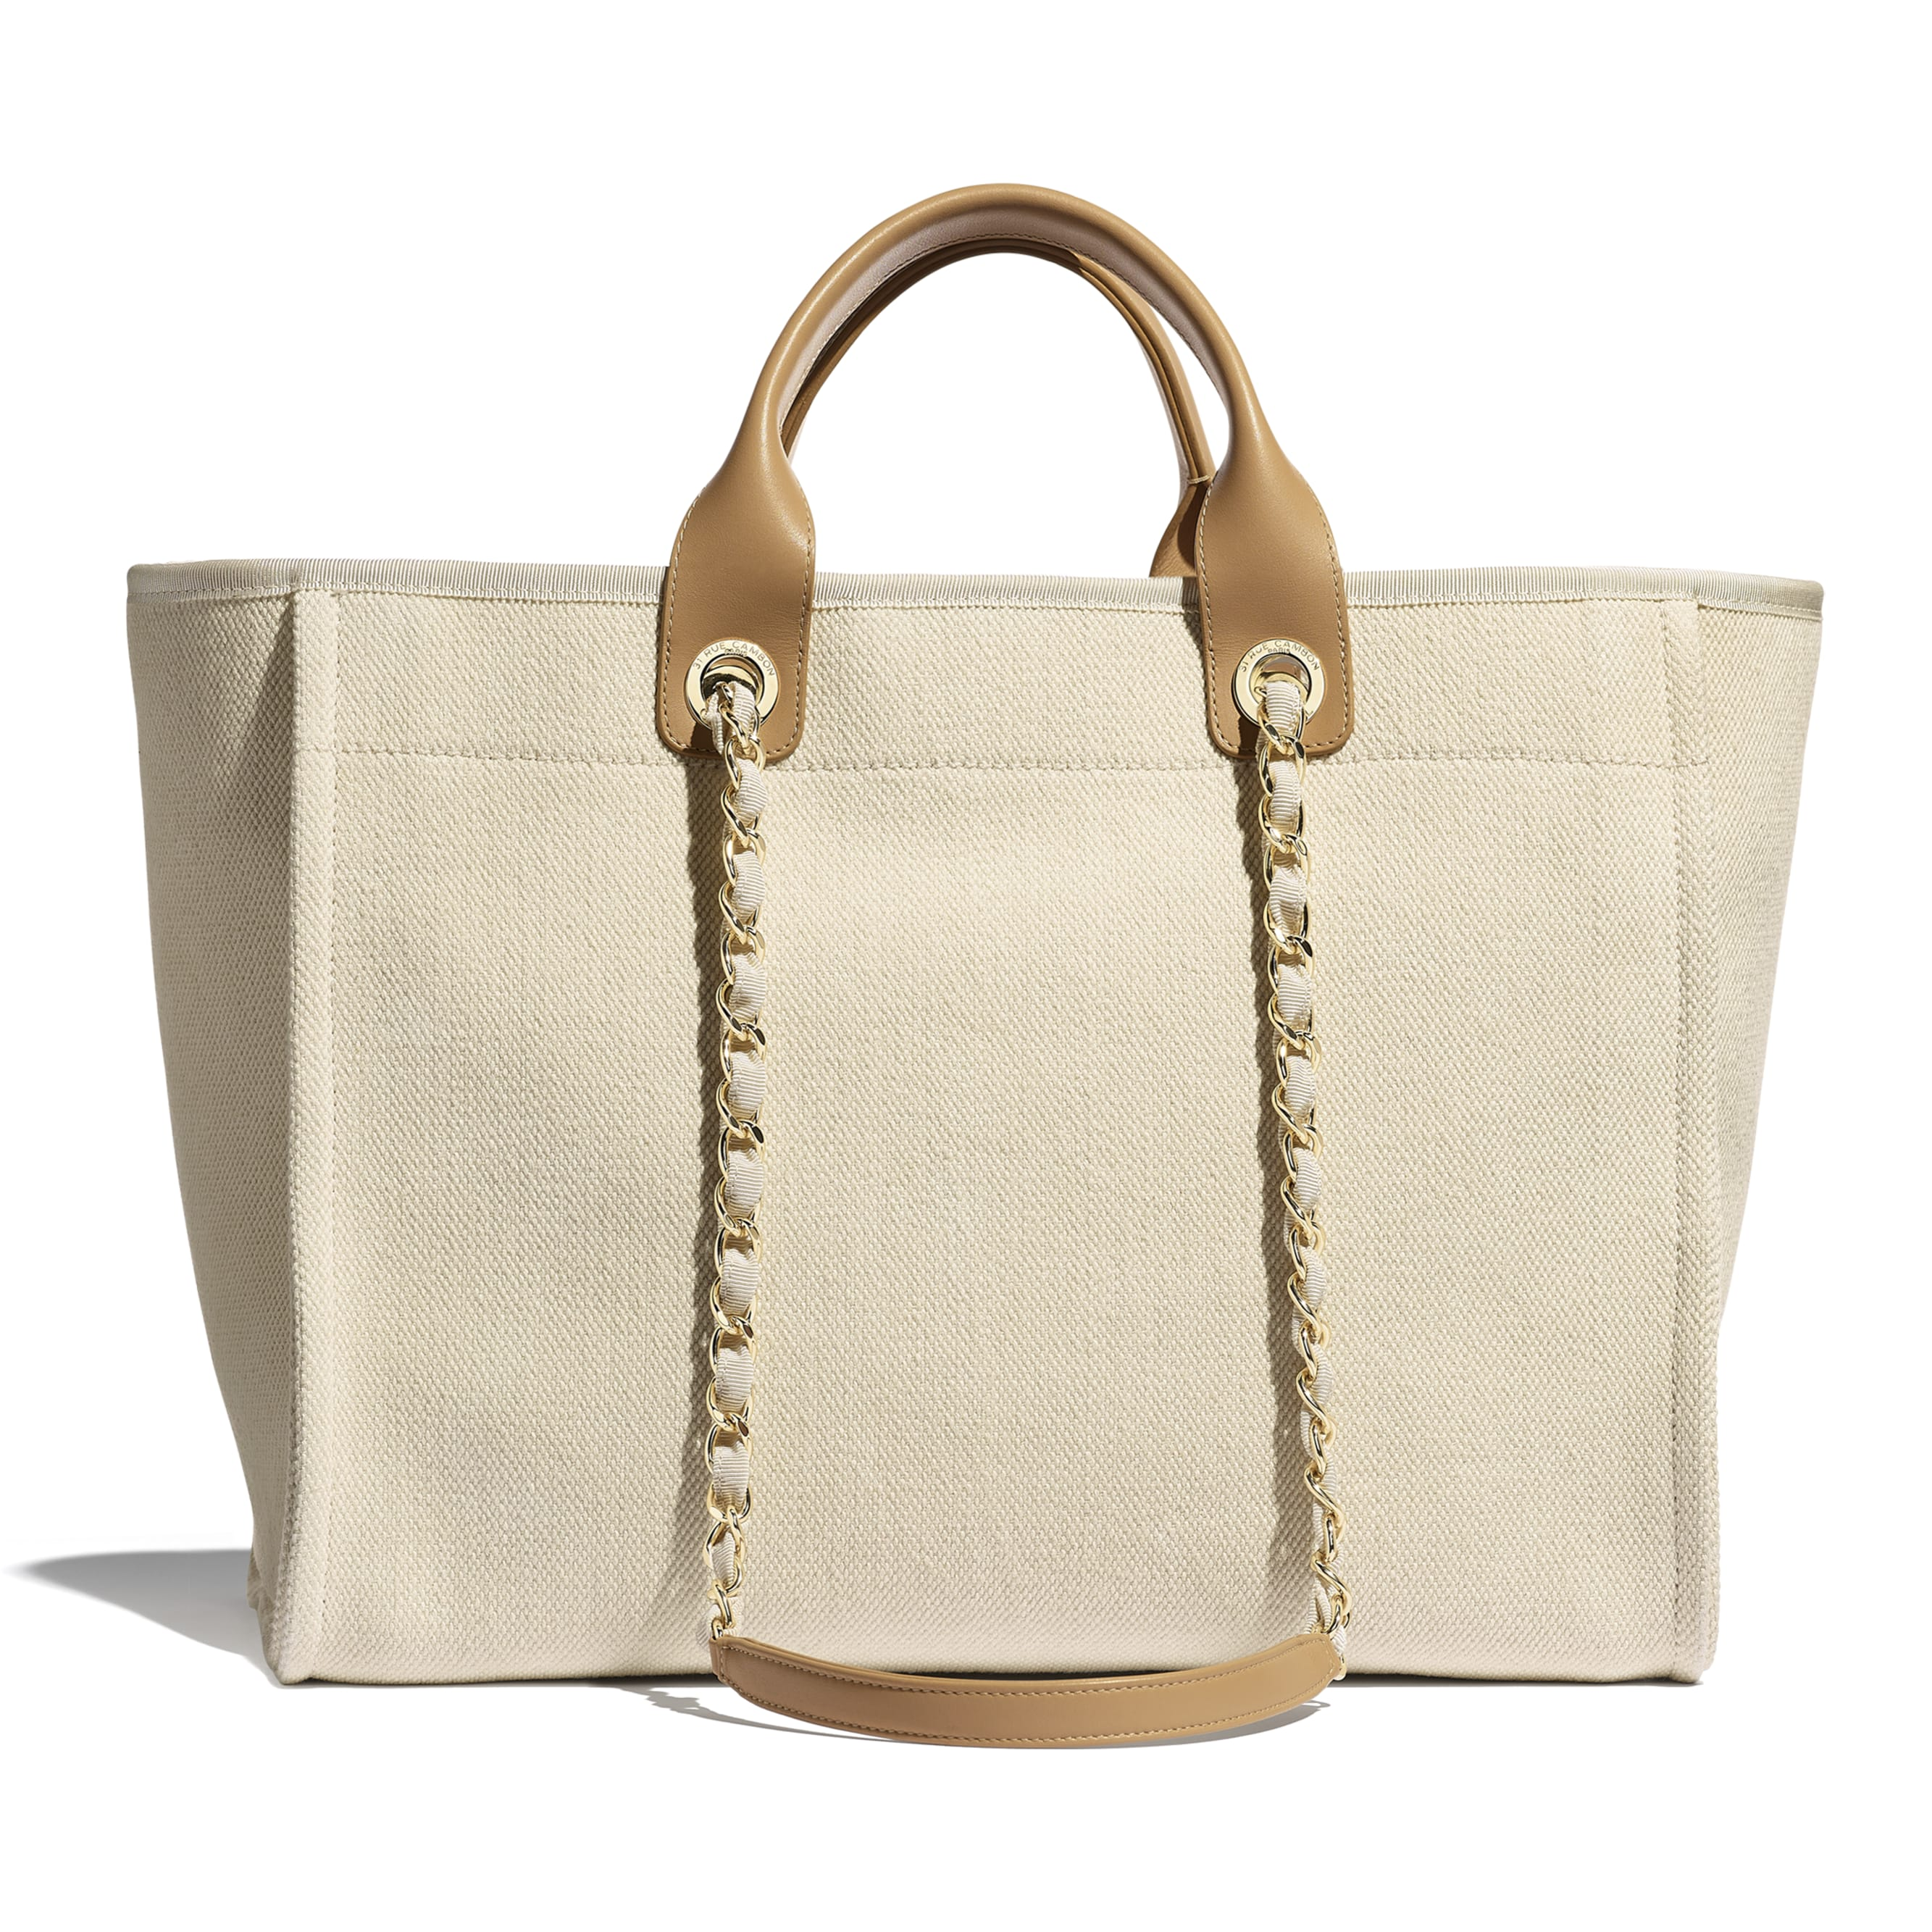 Large Tote - Ecru & Beige - Mixed Fibers, Imitation Pearls & Gold-Tone Metal - CHANEL - Alternative view - see standard sized version